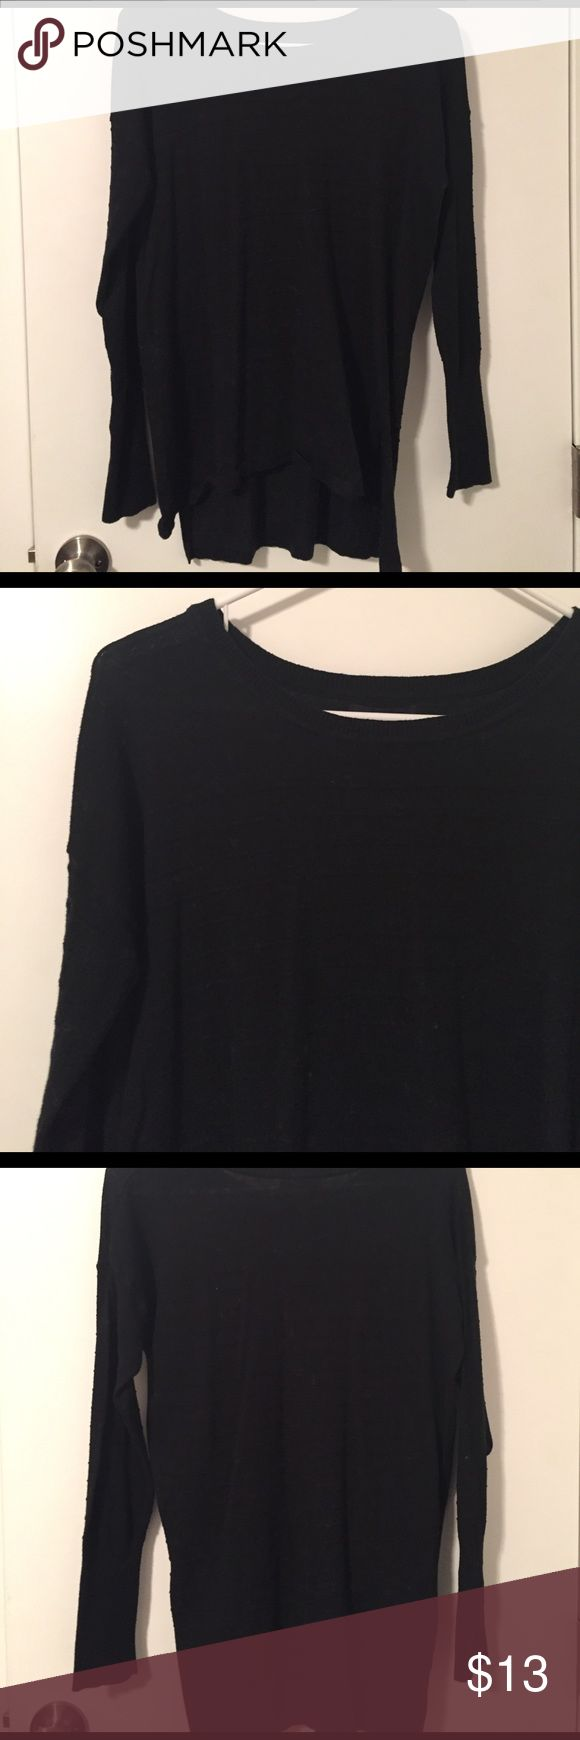 Black Gap Sweater Long sleeve black gap sweater. Textured lines along the front, back and sleeves. GAP Sweaters Crew & Scoop Necks